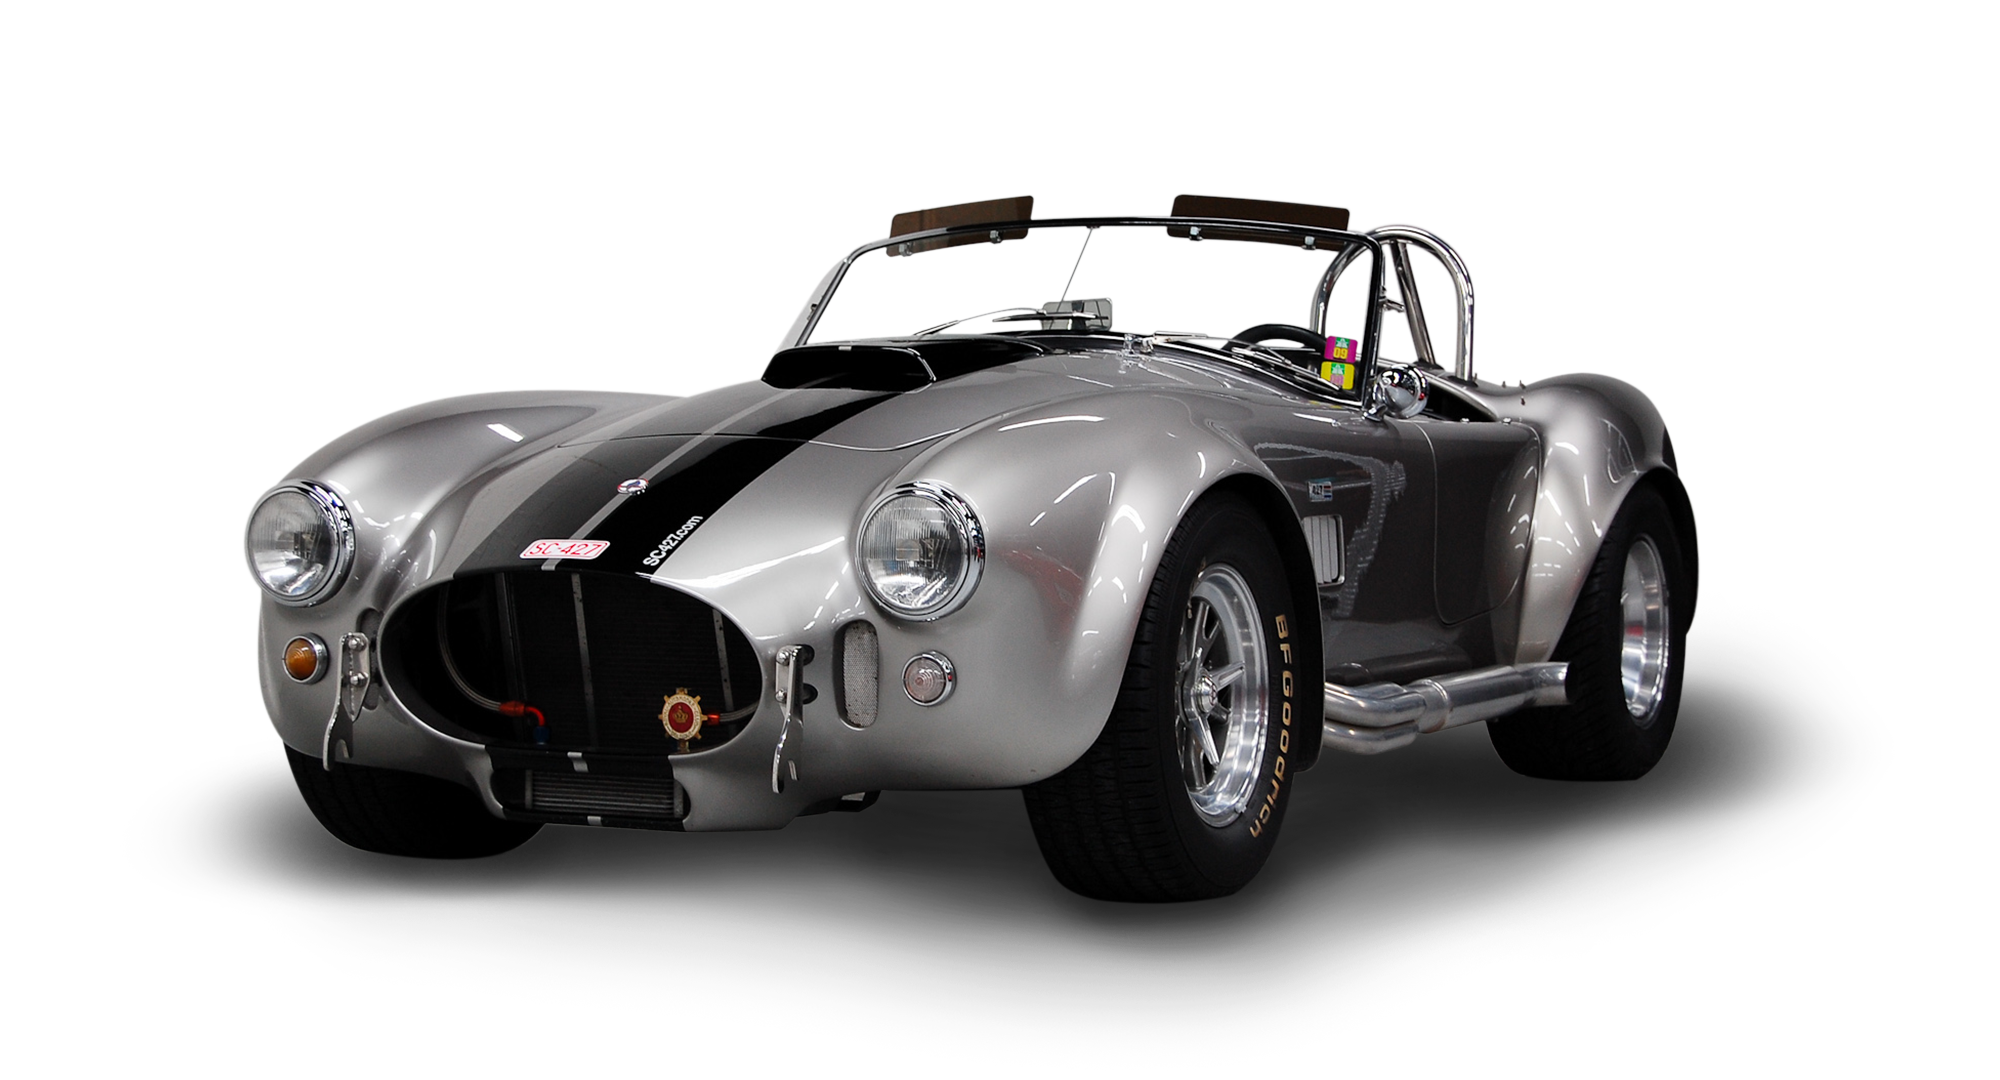 WAX-IT Detailing AC Cobra